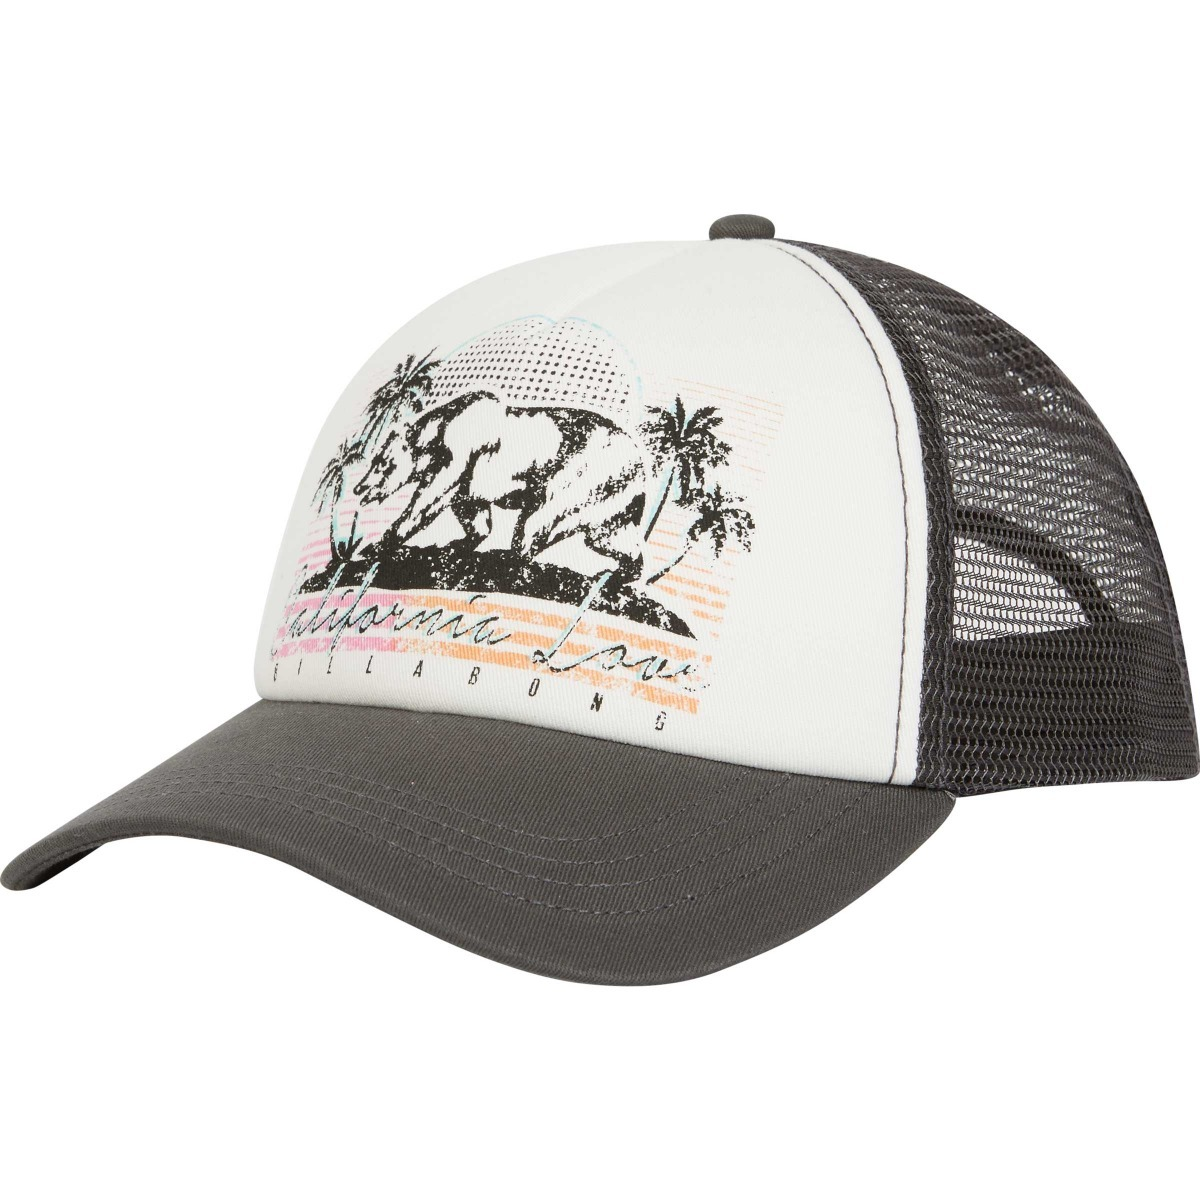 Gorra Billabong Retro Bear Trucker Grey Mujer Jahwnbre -   599 a41a2978dab